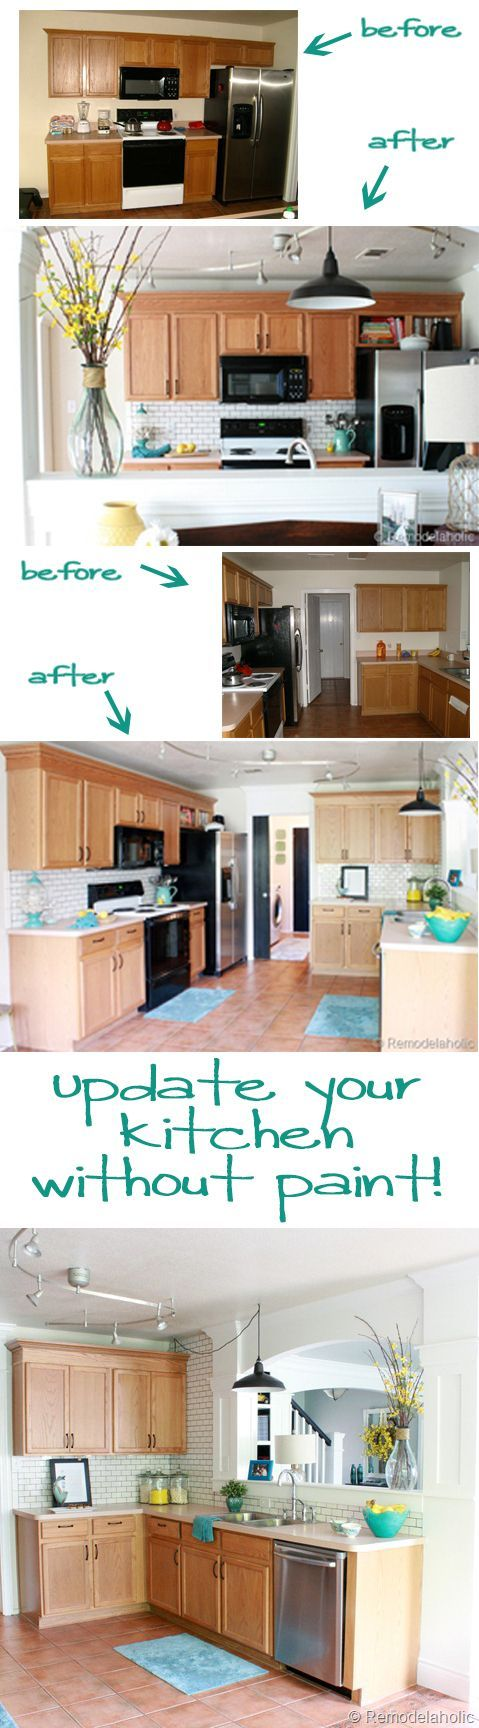 Kitchen Makeover without painting @Remodelaholic .com .com .com #kitchen #Makeover #wood_cabinets